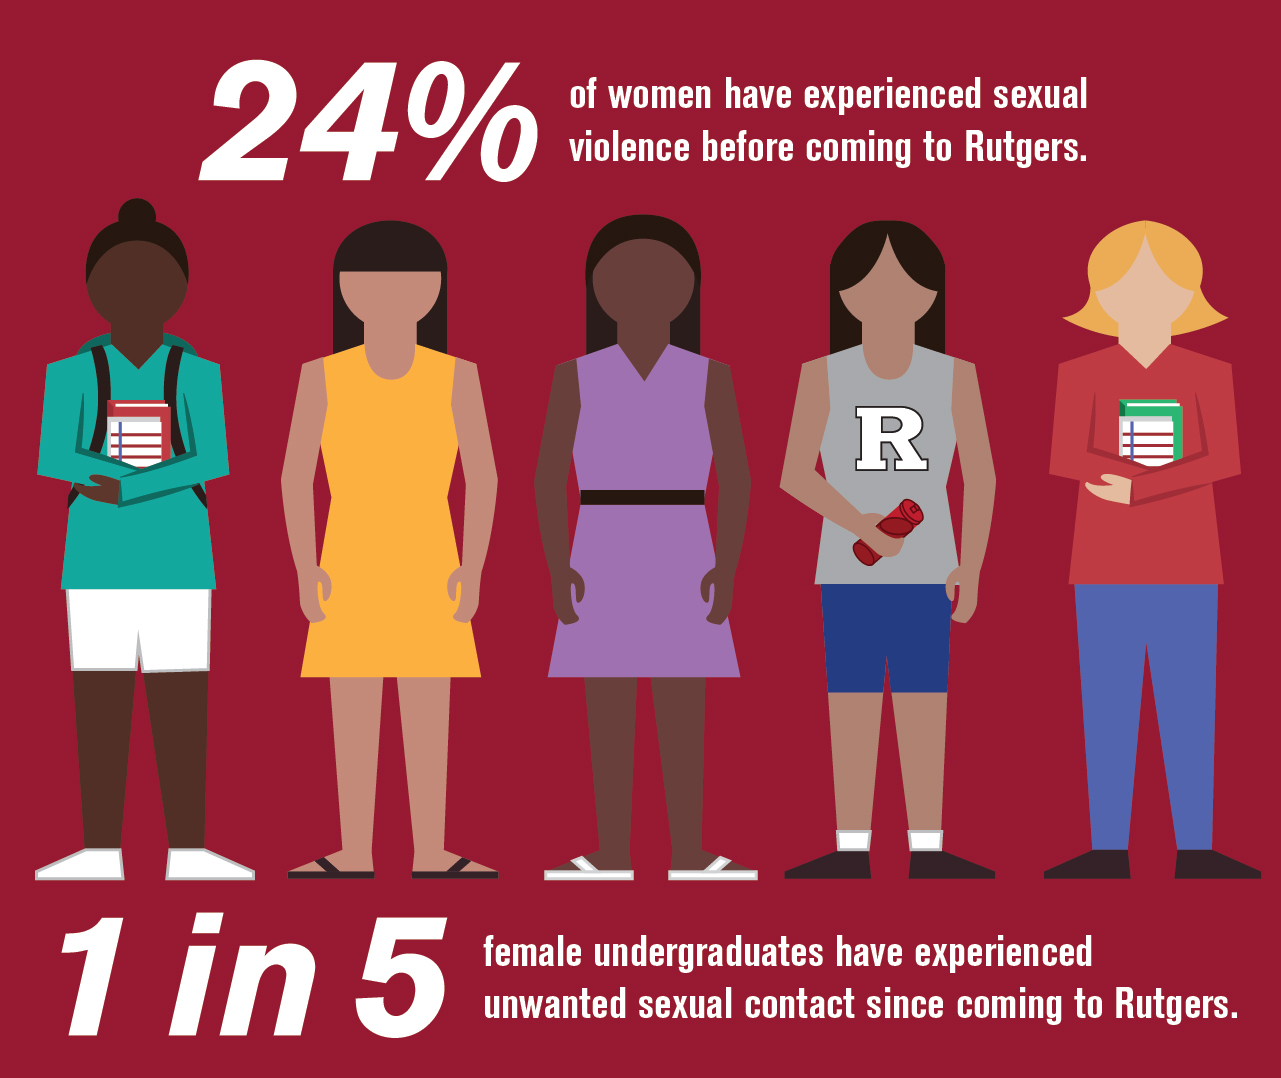 24% of Women have experienced sexual violence before coming to Rutgers. 1 in 5 female undergraduates have experienced unwanted sexual contact since coming to Rutgers.